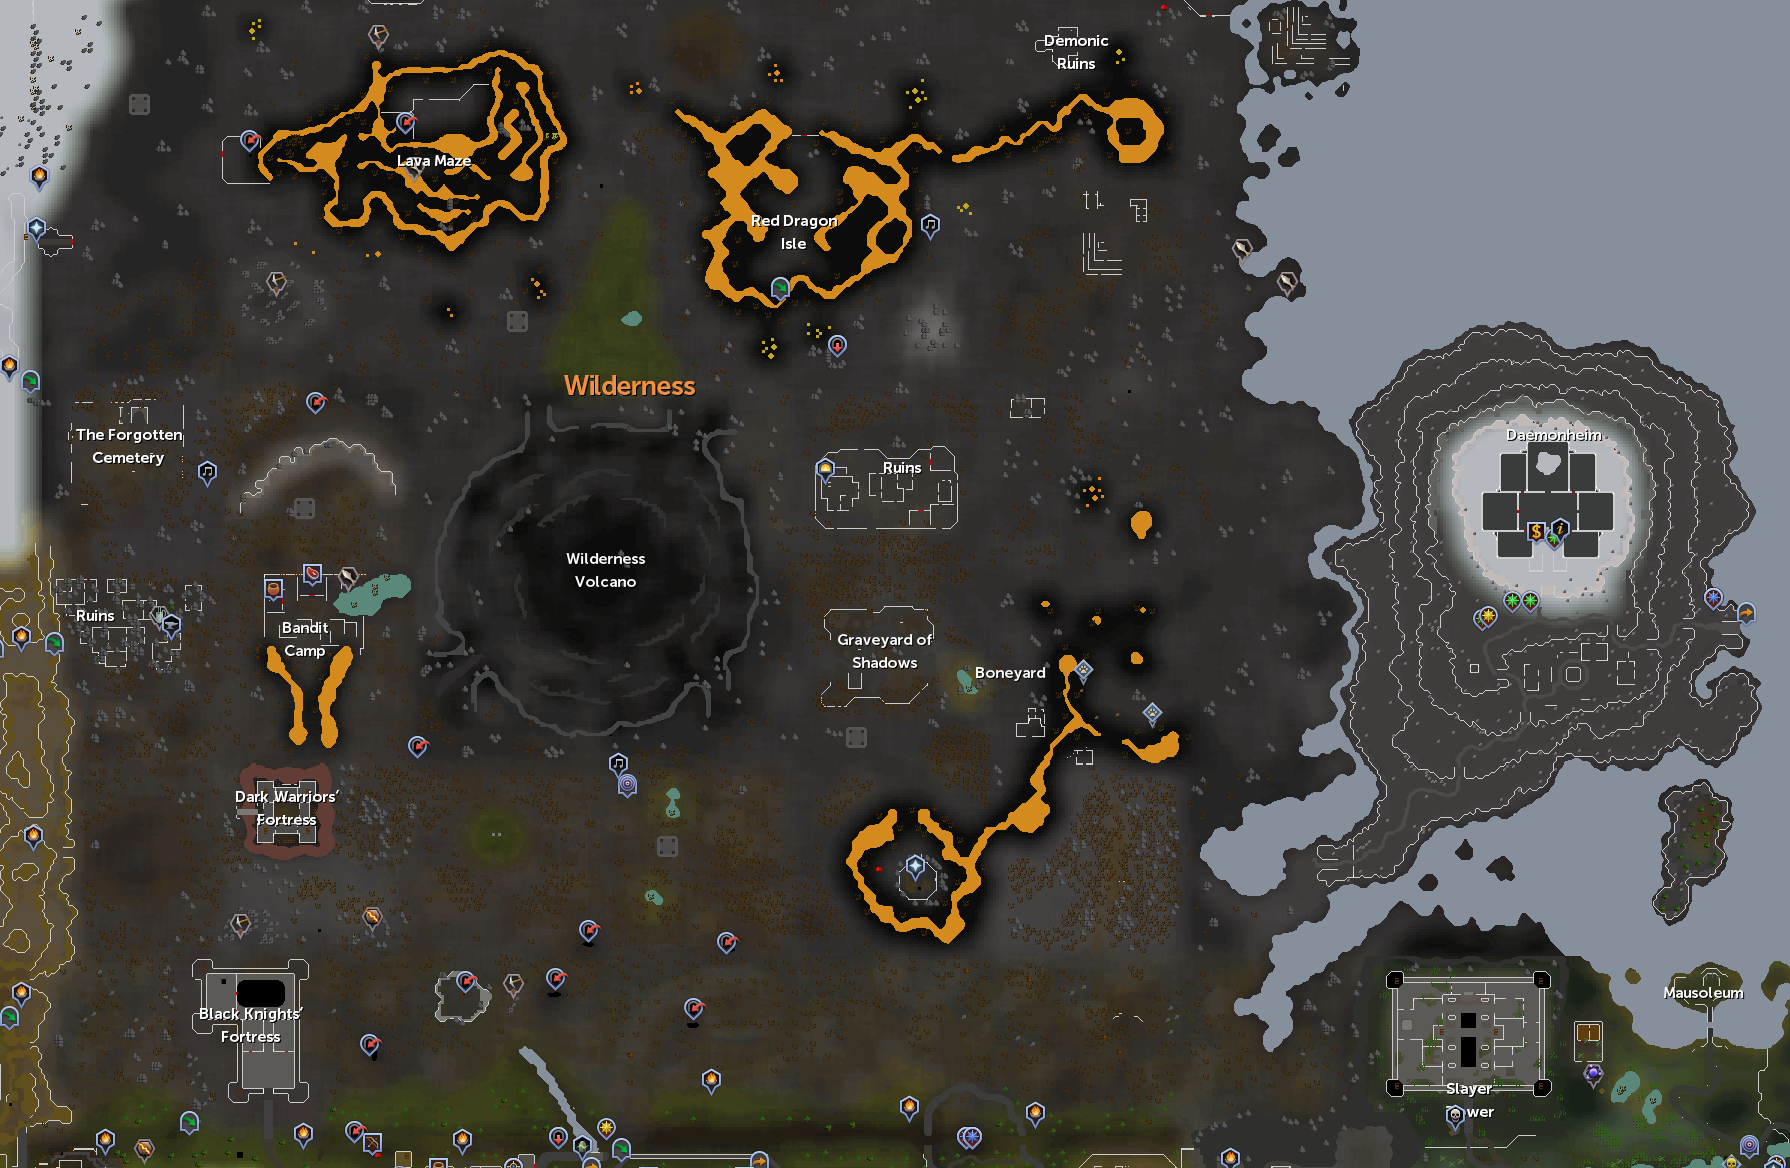 Osrs World Map In Game. Wilderness free to play areas map png Image  RuneScape Wiki